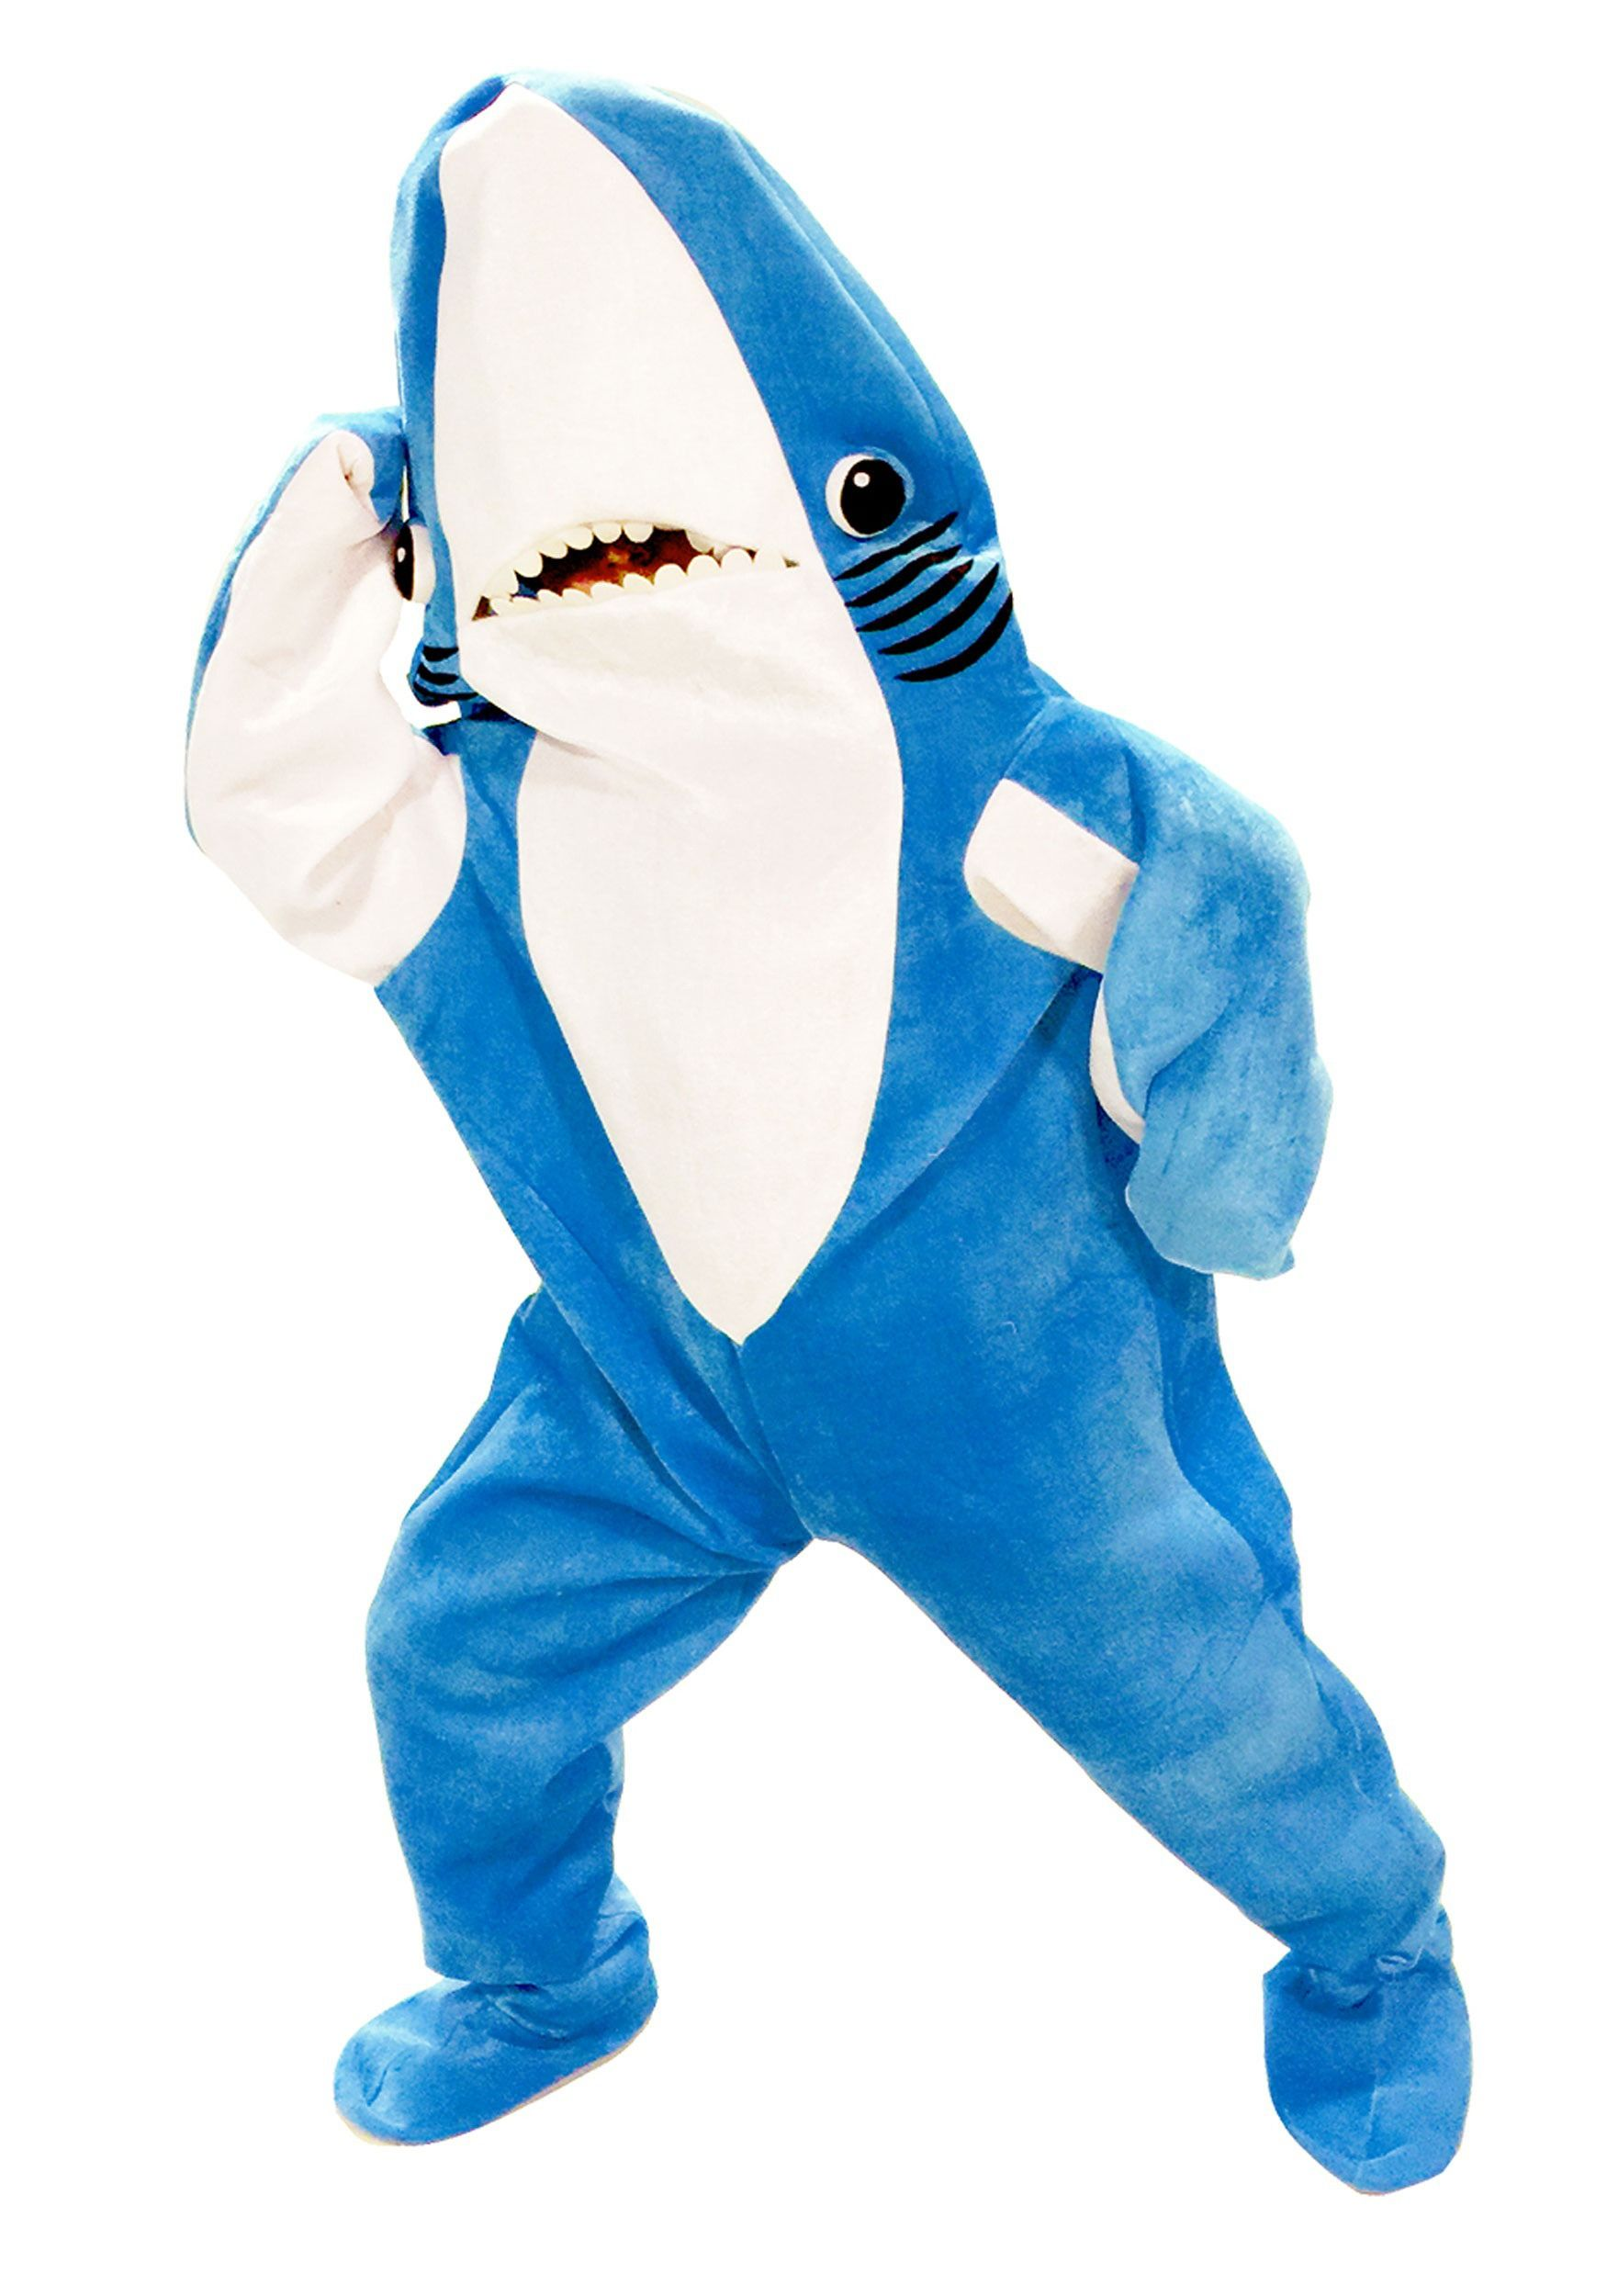 Go as your favorite meme this Halloween | Shark costumes, Left ...